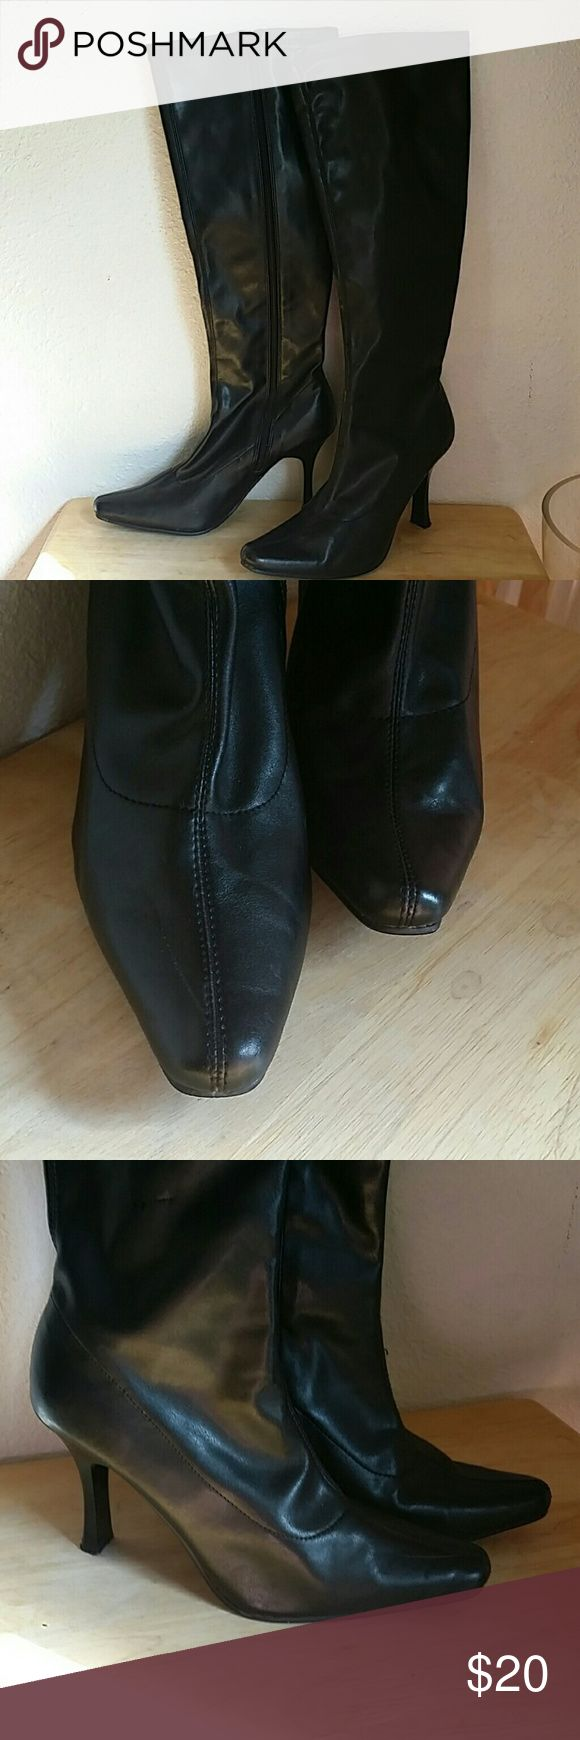 """Jennifer Lopez boots Black boots, side zipper, size 8M Measures 15.5"""" in height plus a 3.5"""" heel. Has little scuffs on the inner side, see pictures. Jennifer Lopez Shoes Heeled Boots"""